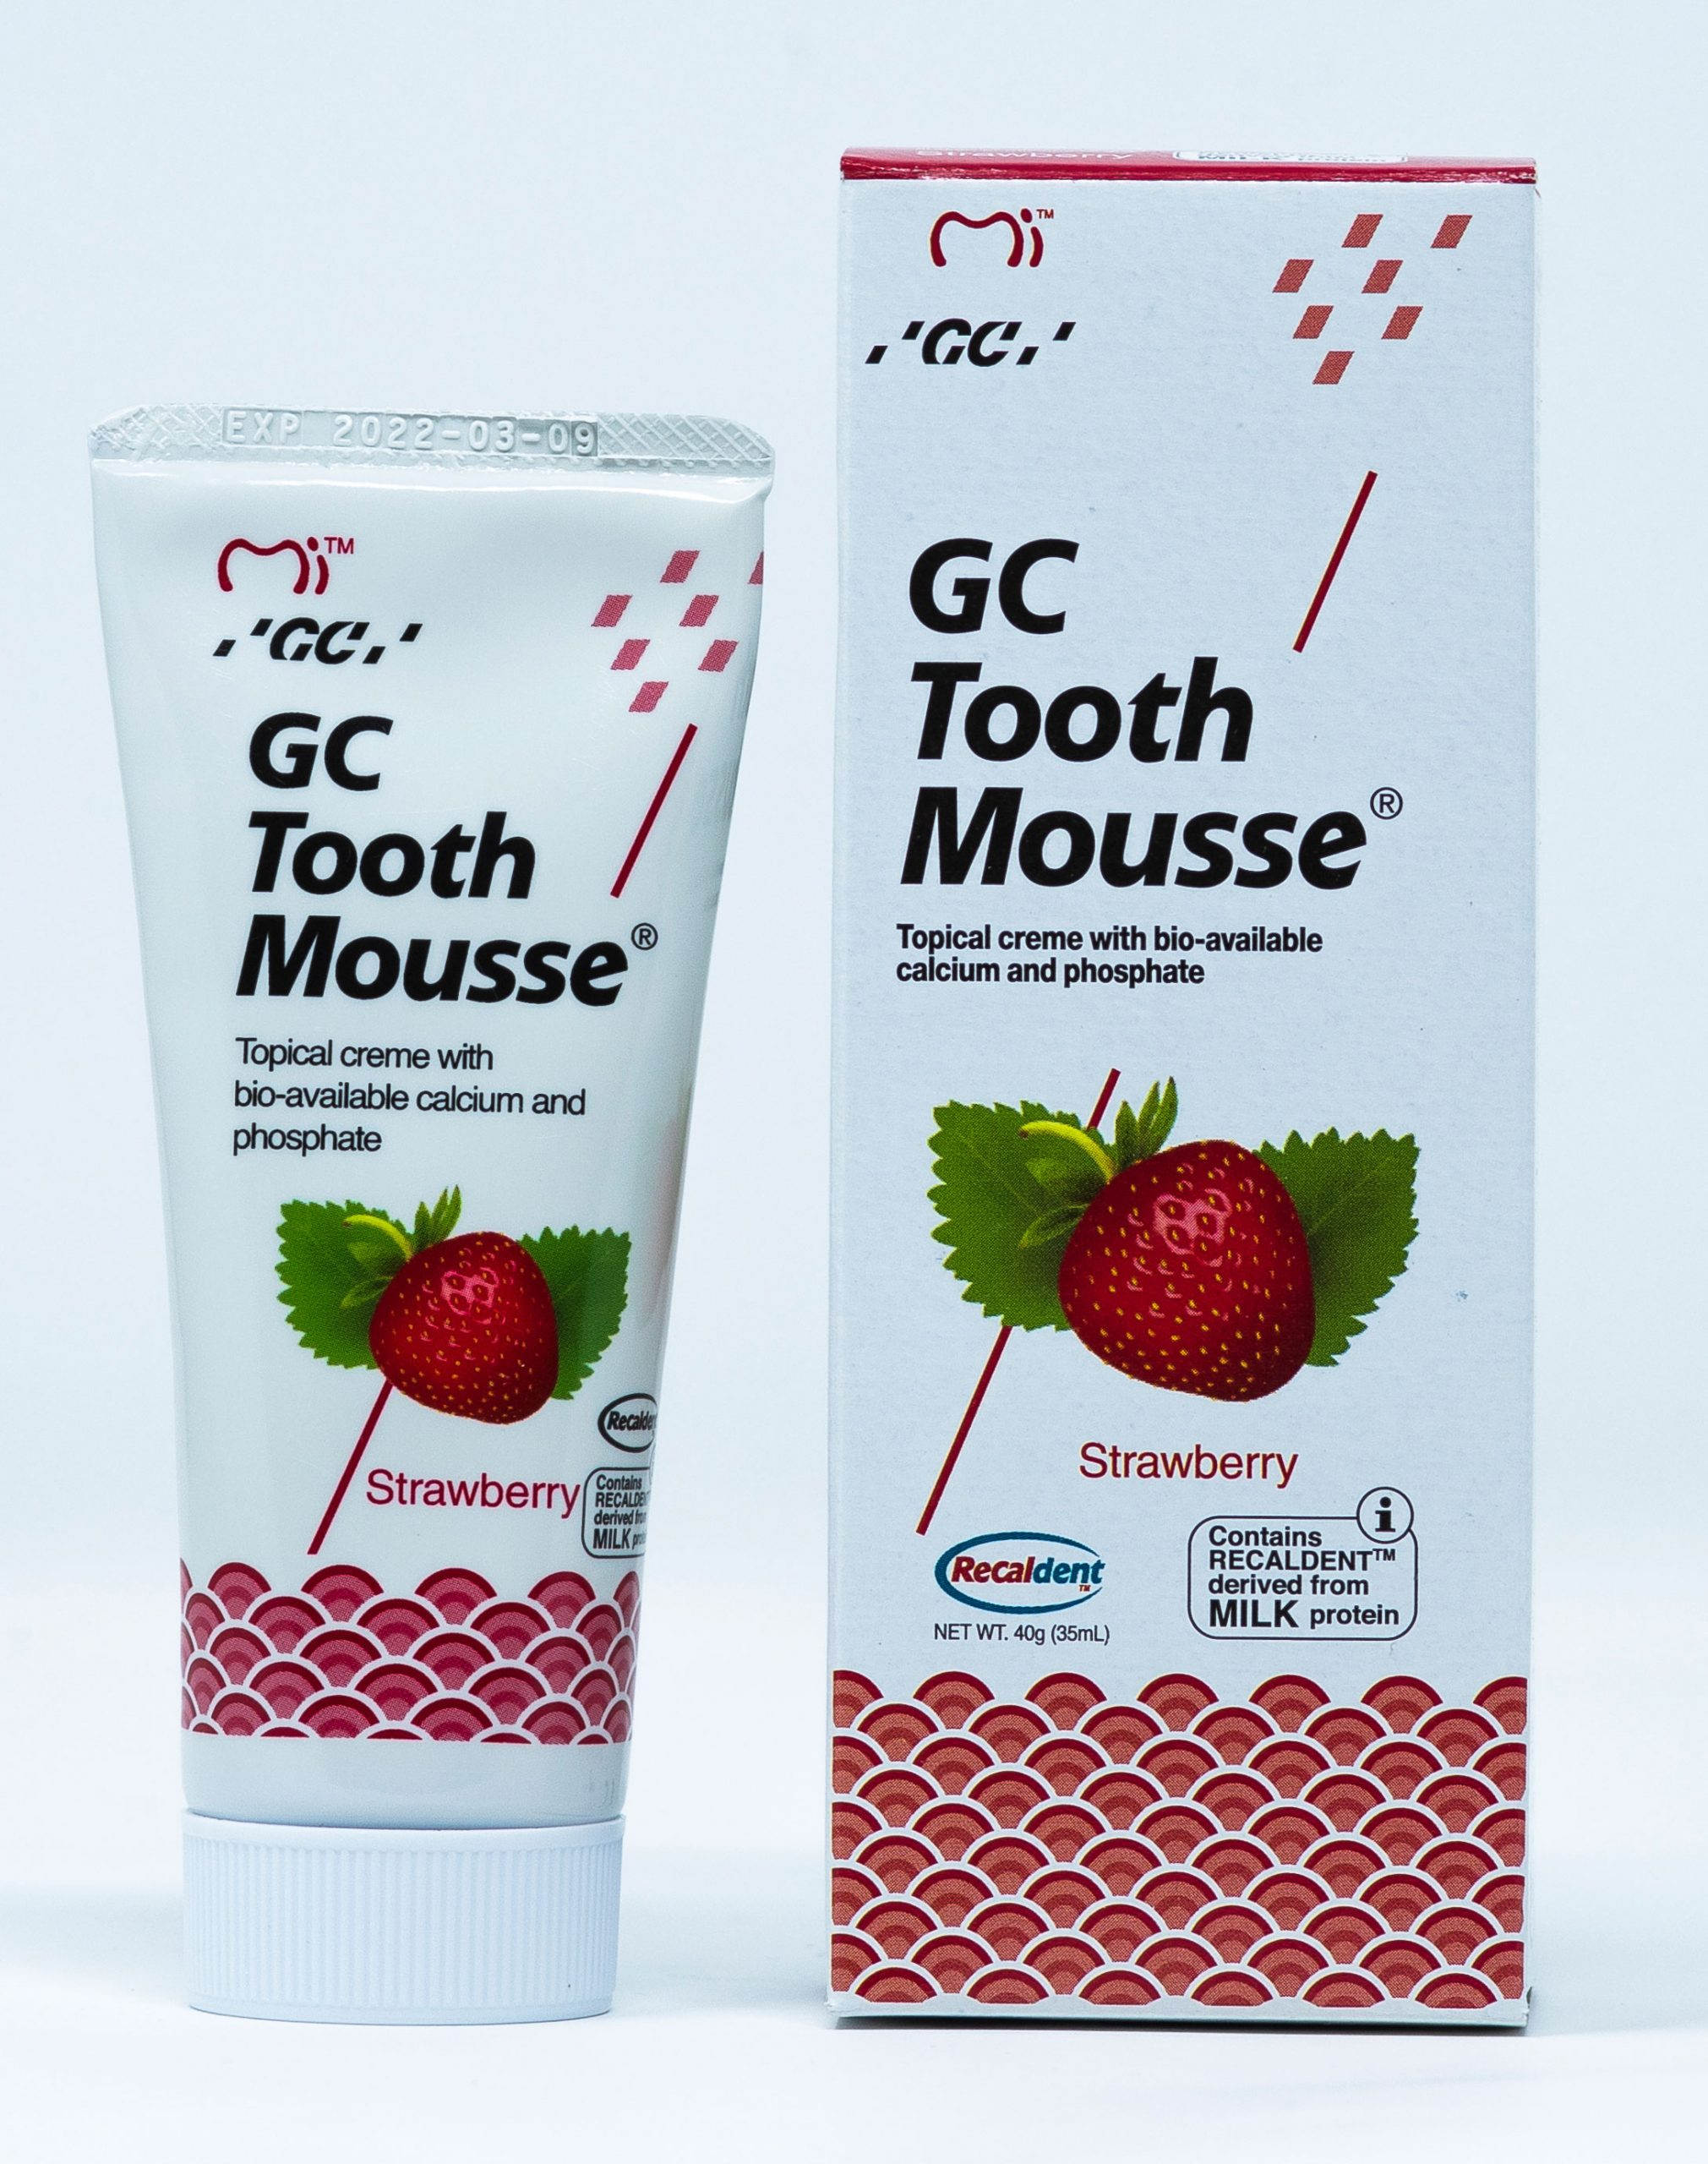 GC Crema Remineralizzante Tooth Mousse Fragola - 40 g